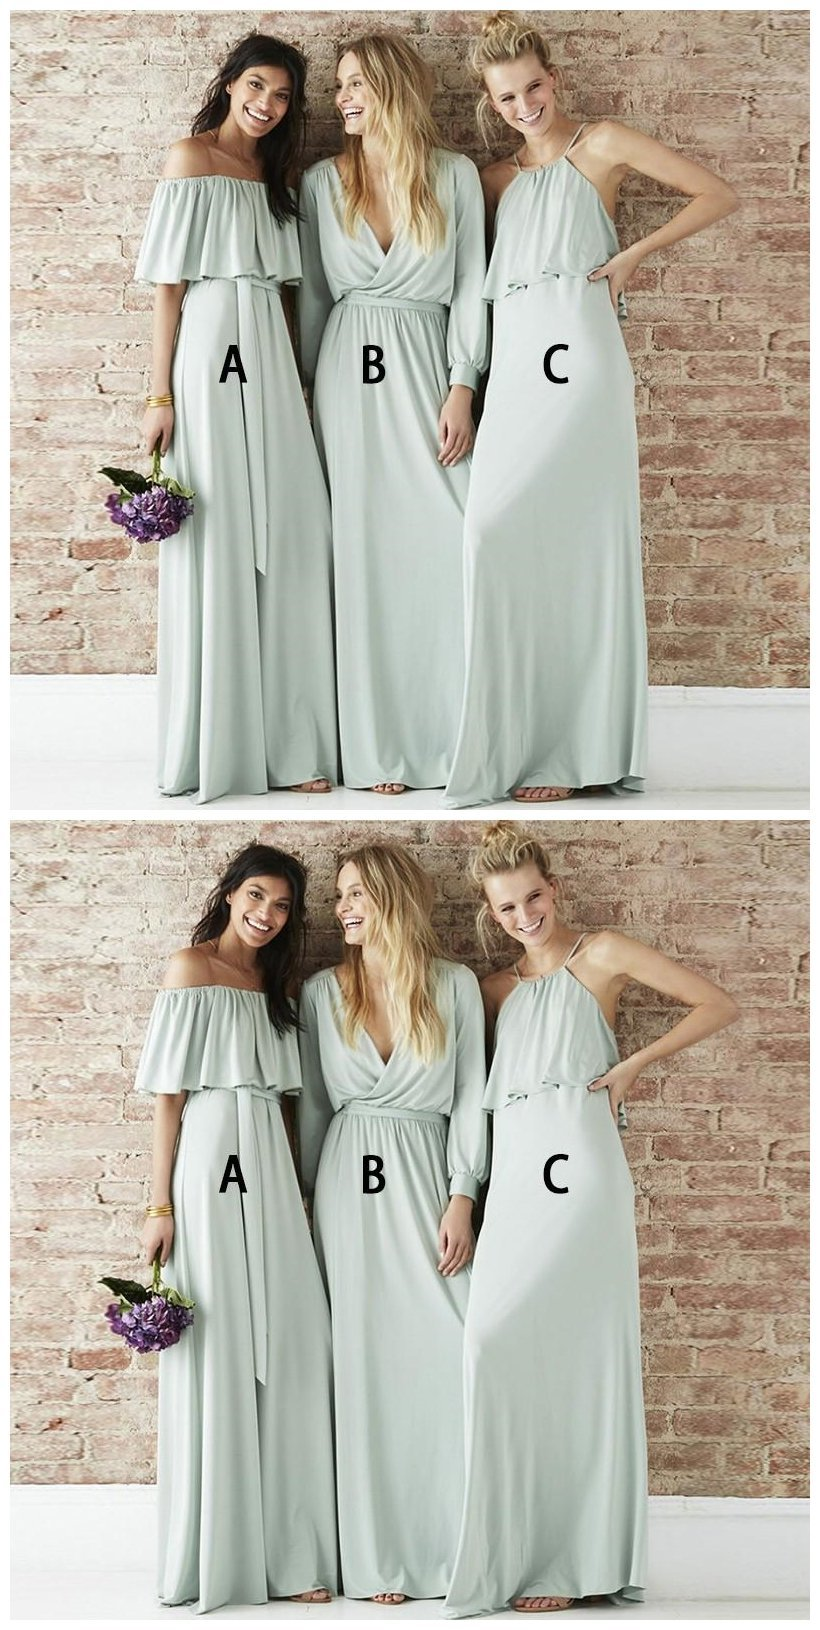 cb84e4bbb454 Prevalent Pale Cyan Mismatched Chiffon Long Bridesmaid Dresses Online,Inexpensive  Bridesmaid Dresses